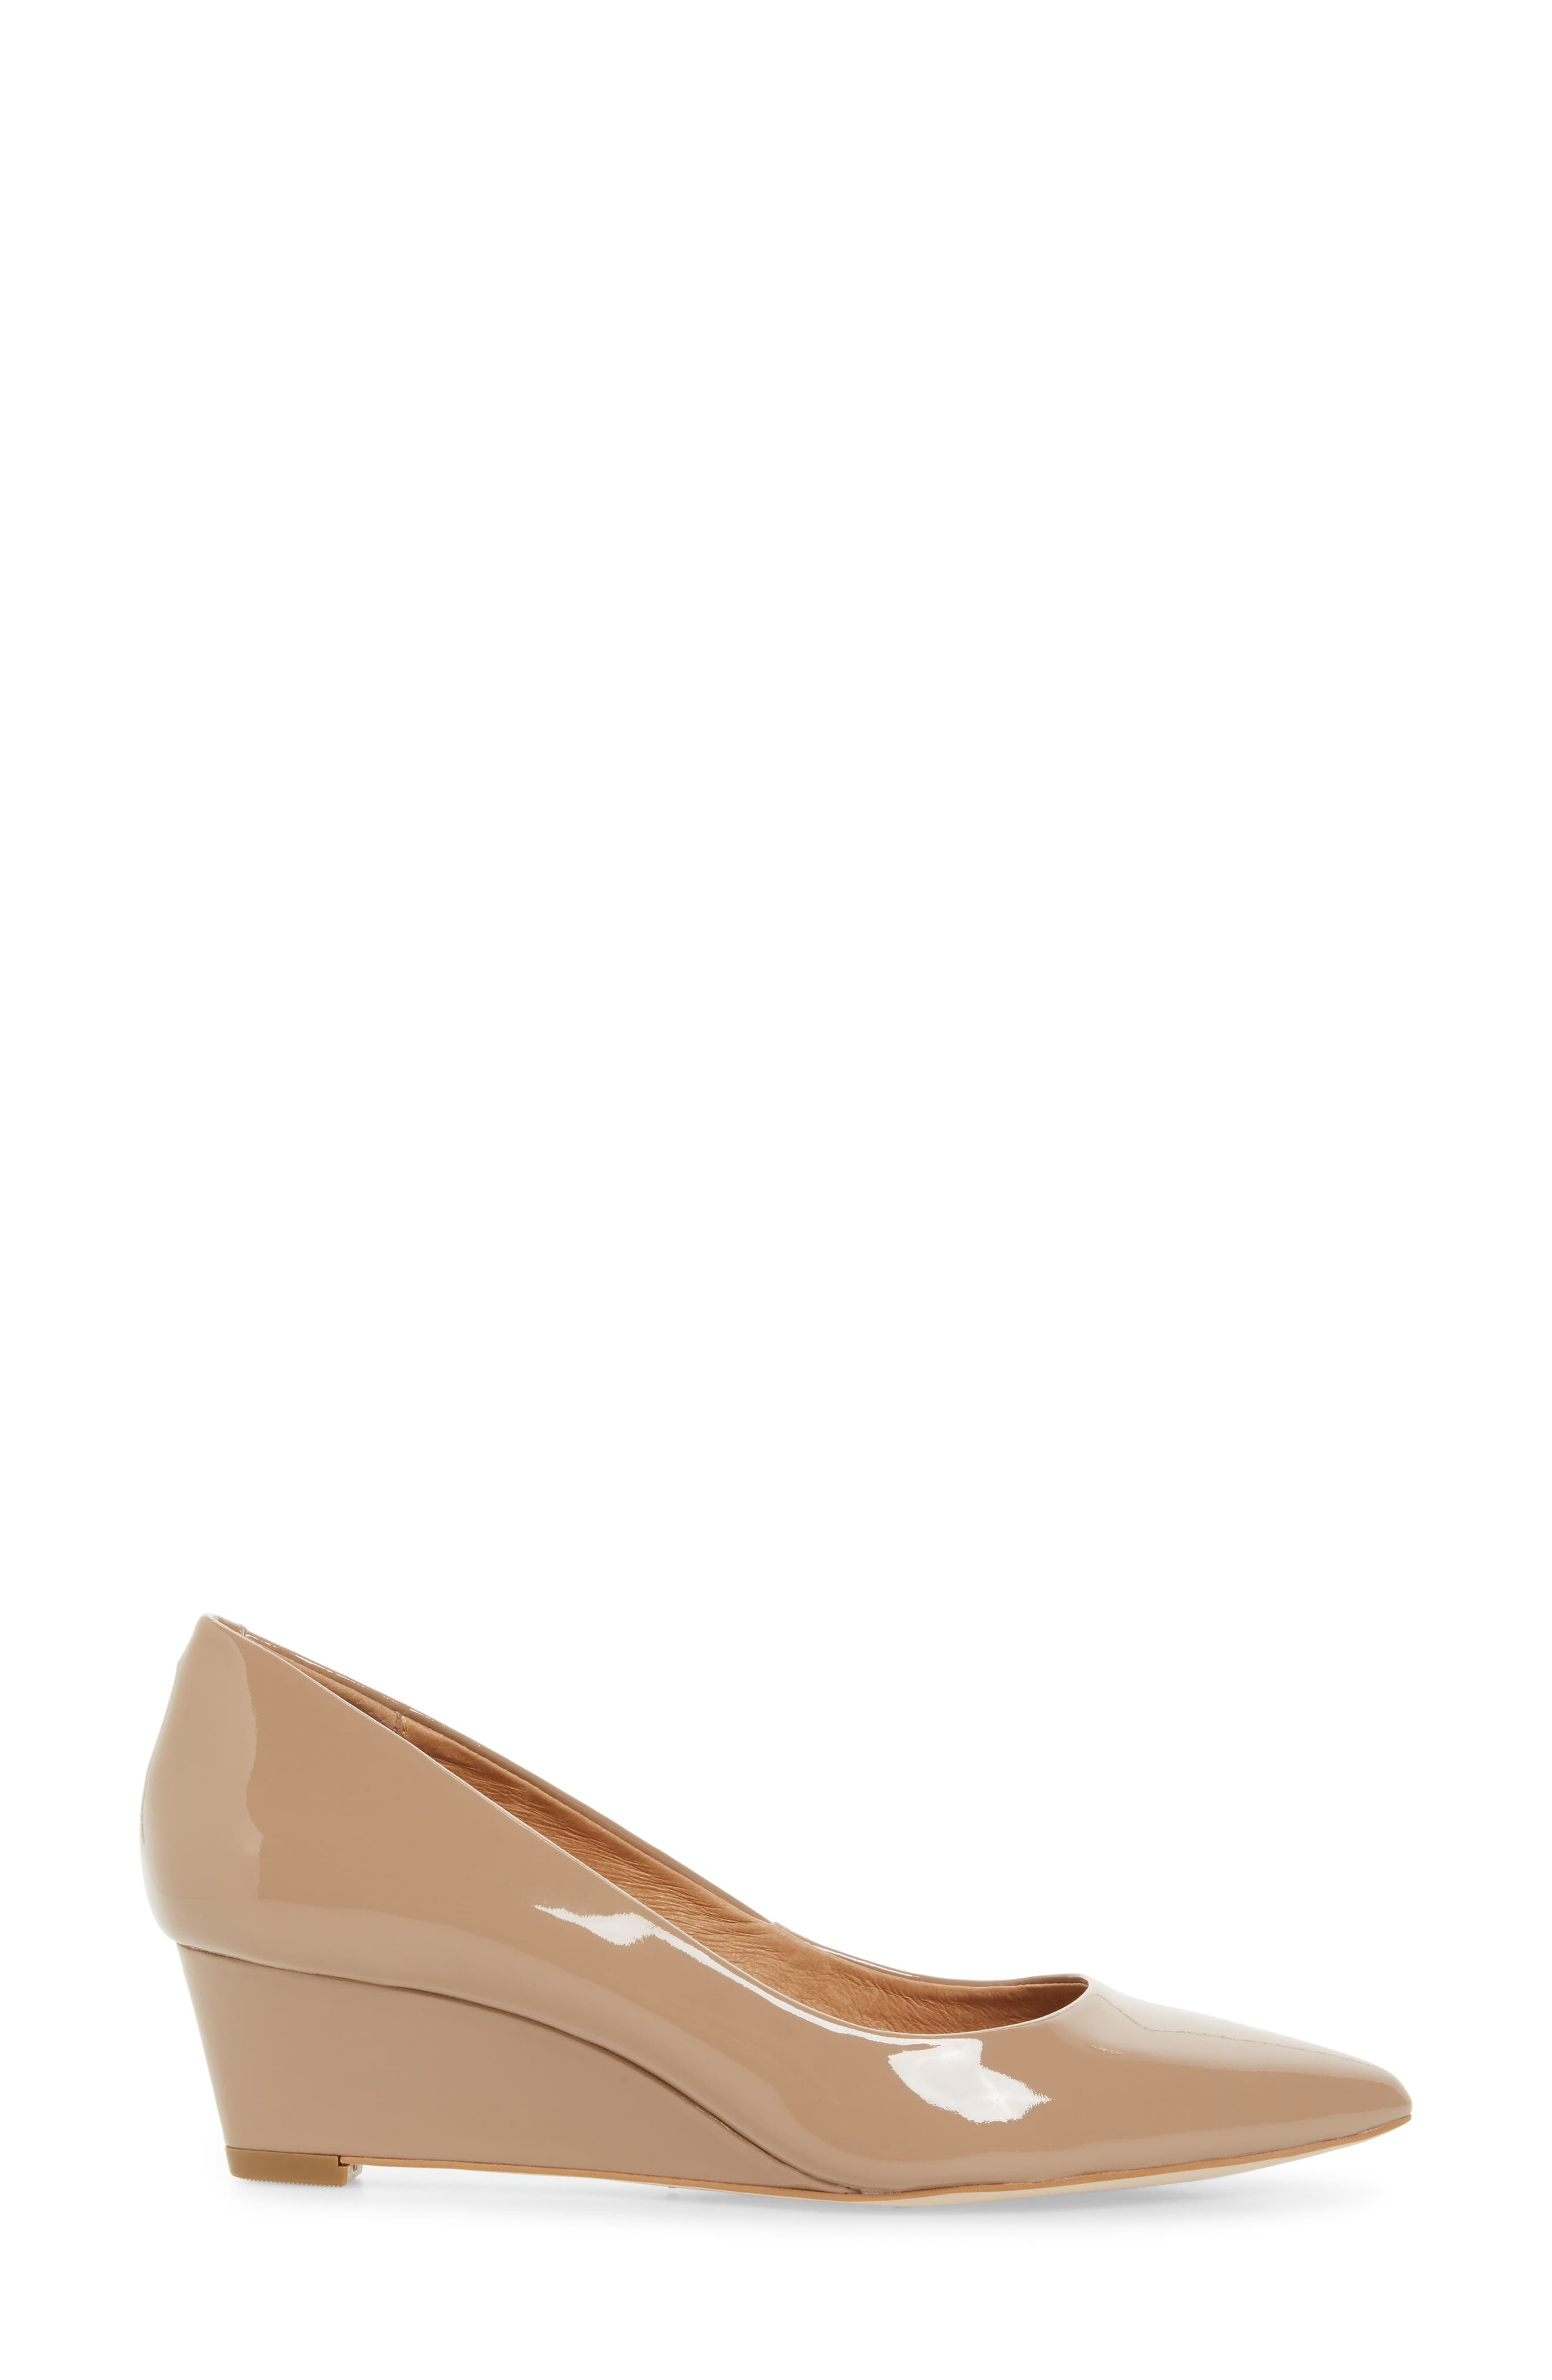 Alternate Image 3  - Corso Como Nelly Pointy Toe Wedge Pump (Women)